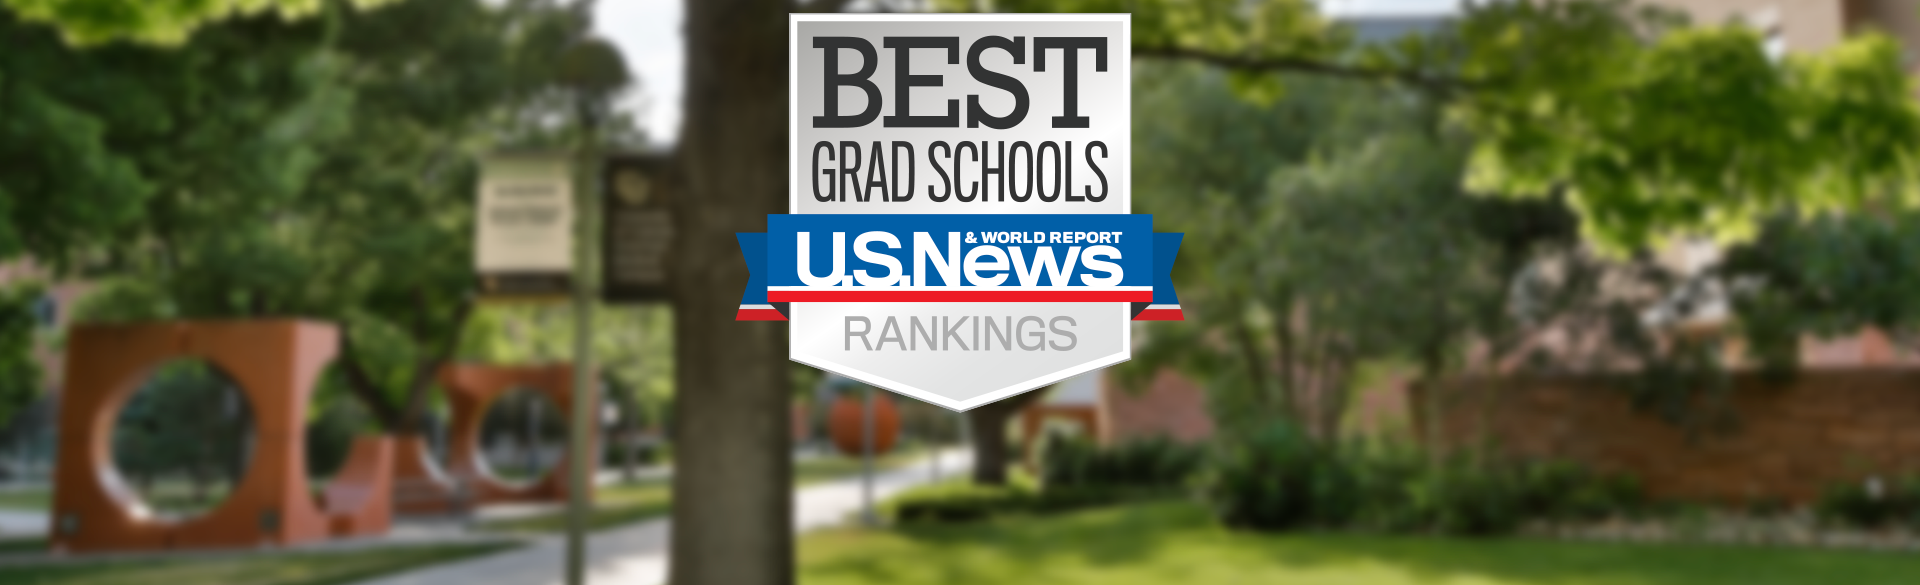 CU School of Medicine in the U.S. News and World Report Rankings